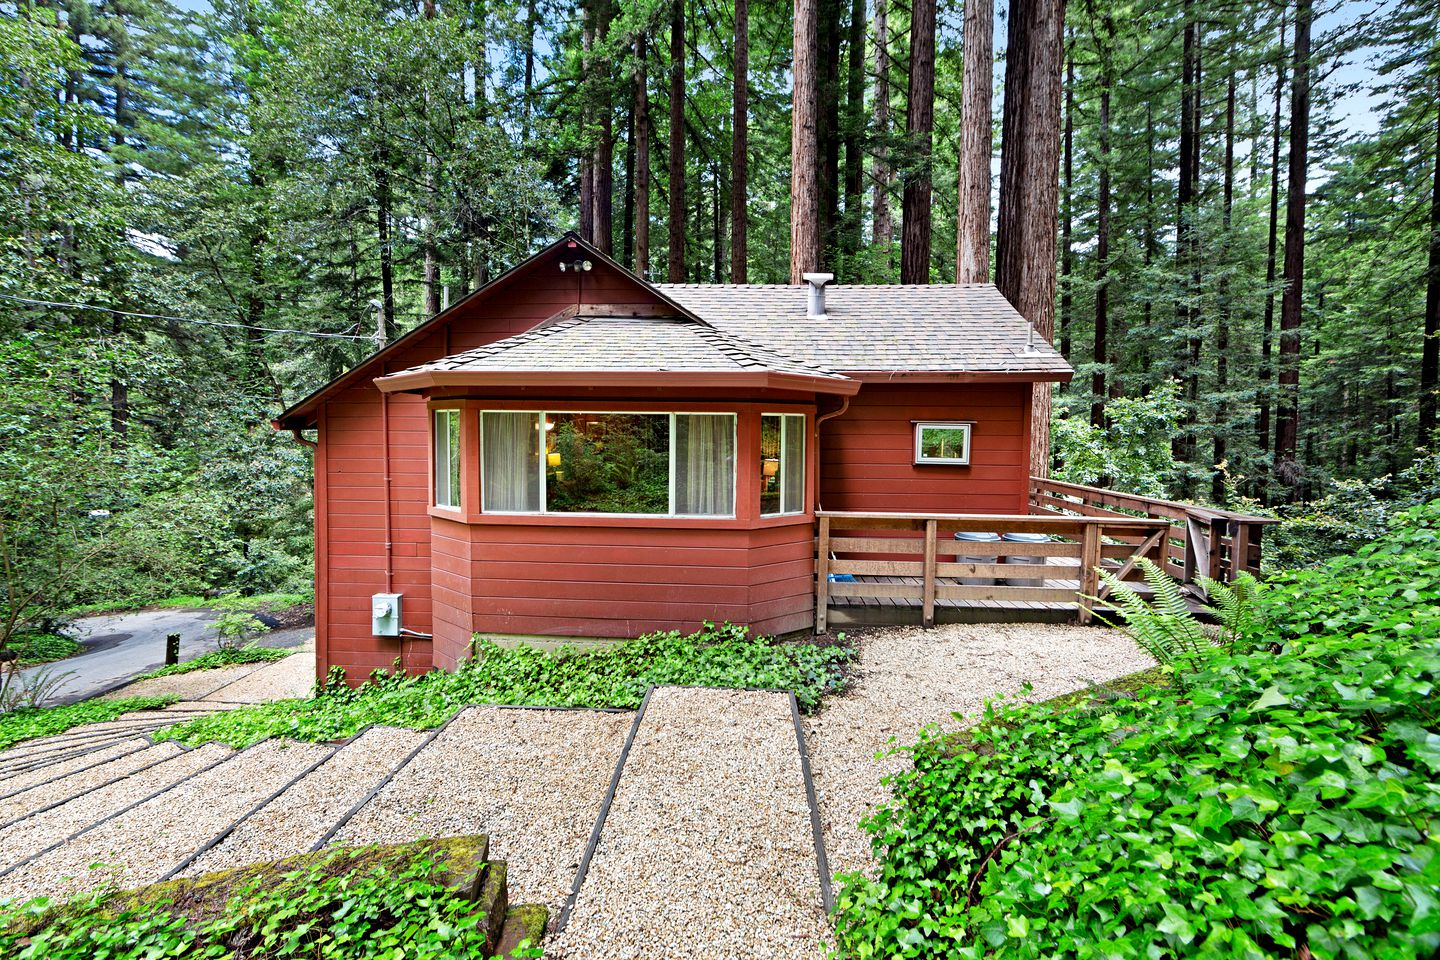 Cabins (United States, Felton, California)